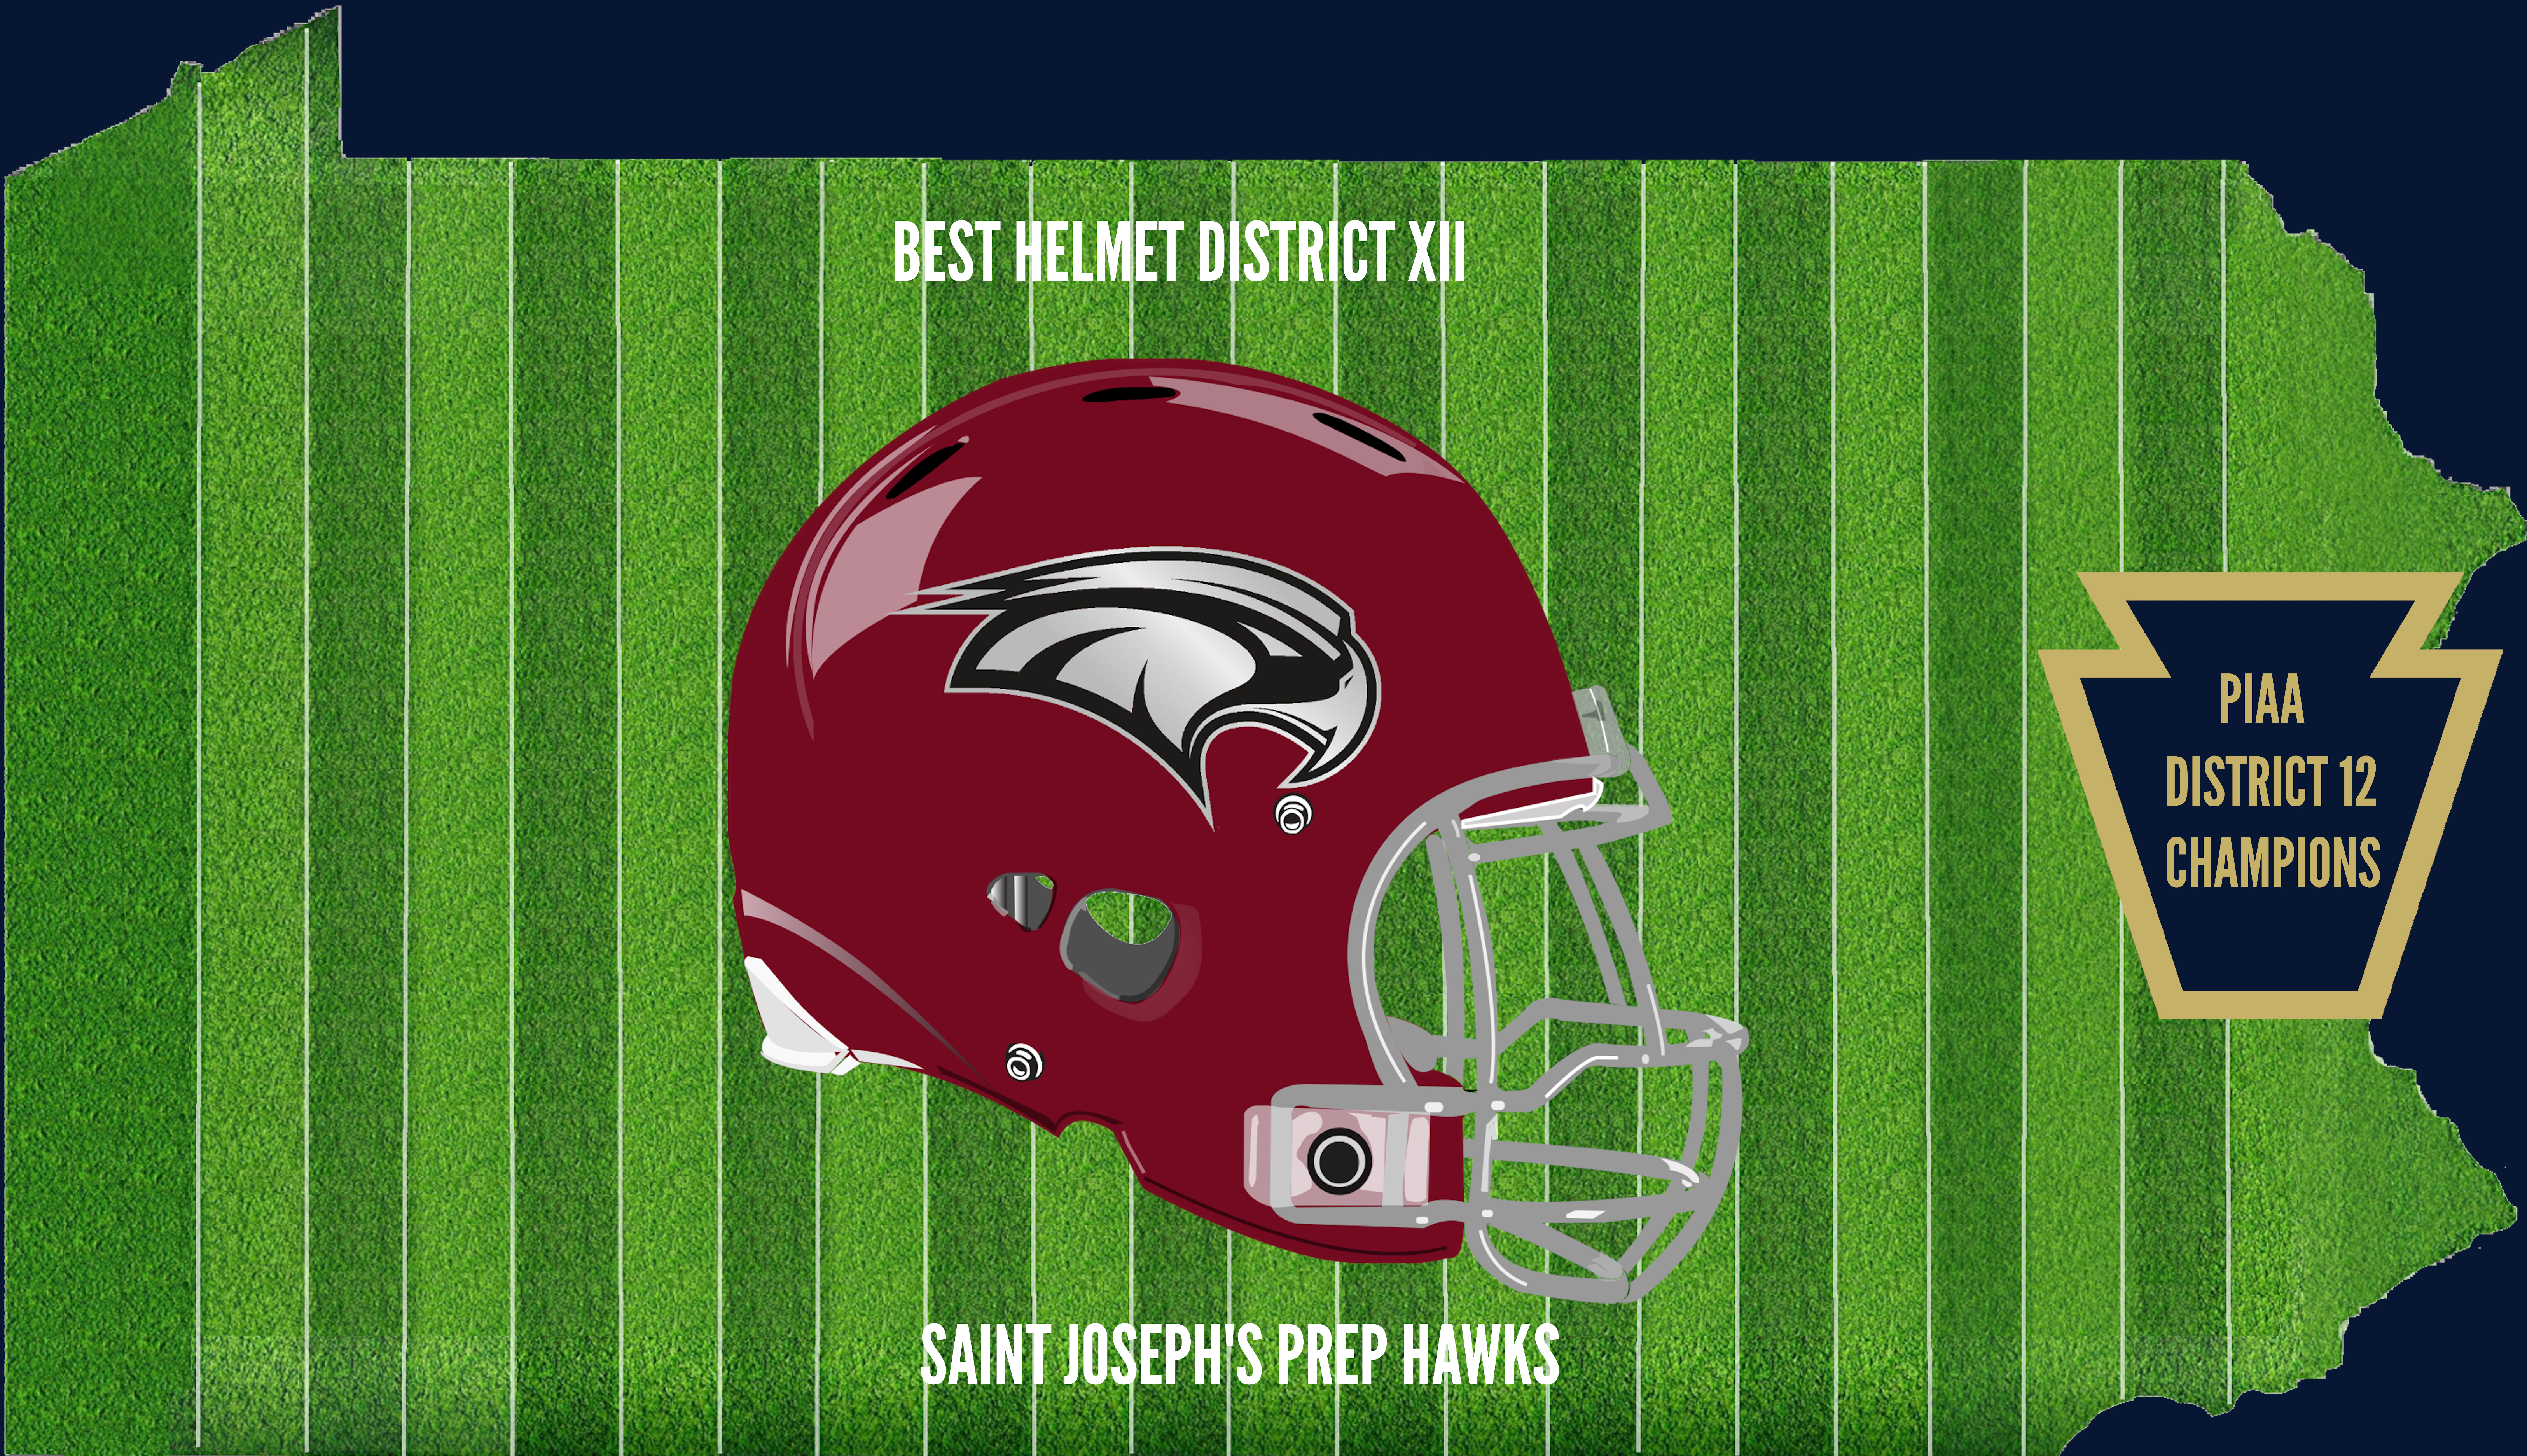 District 12 Champion Helmet